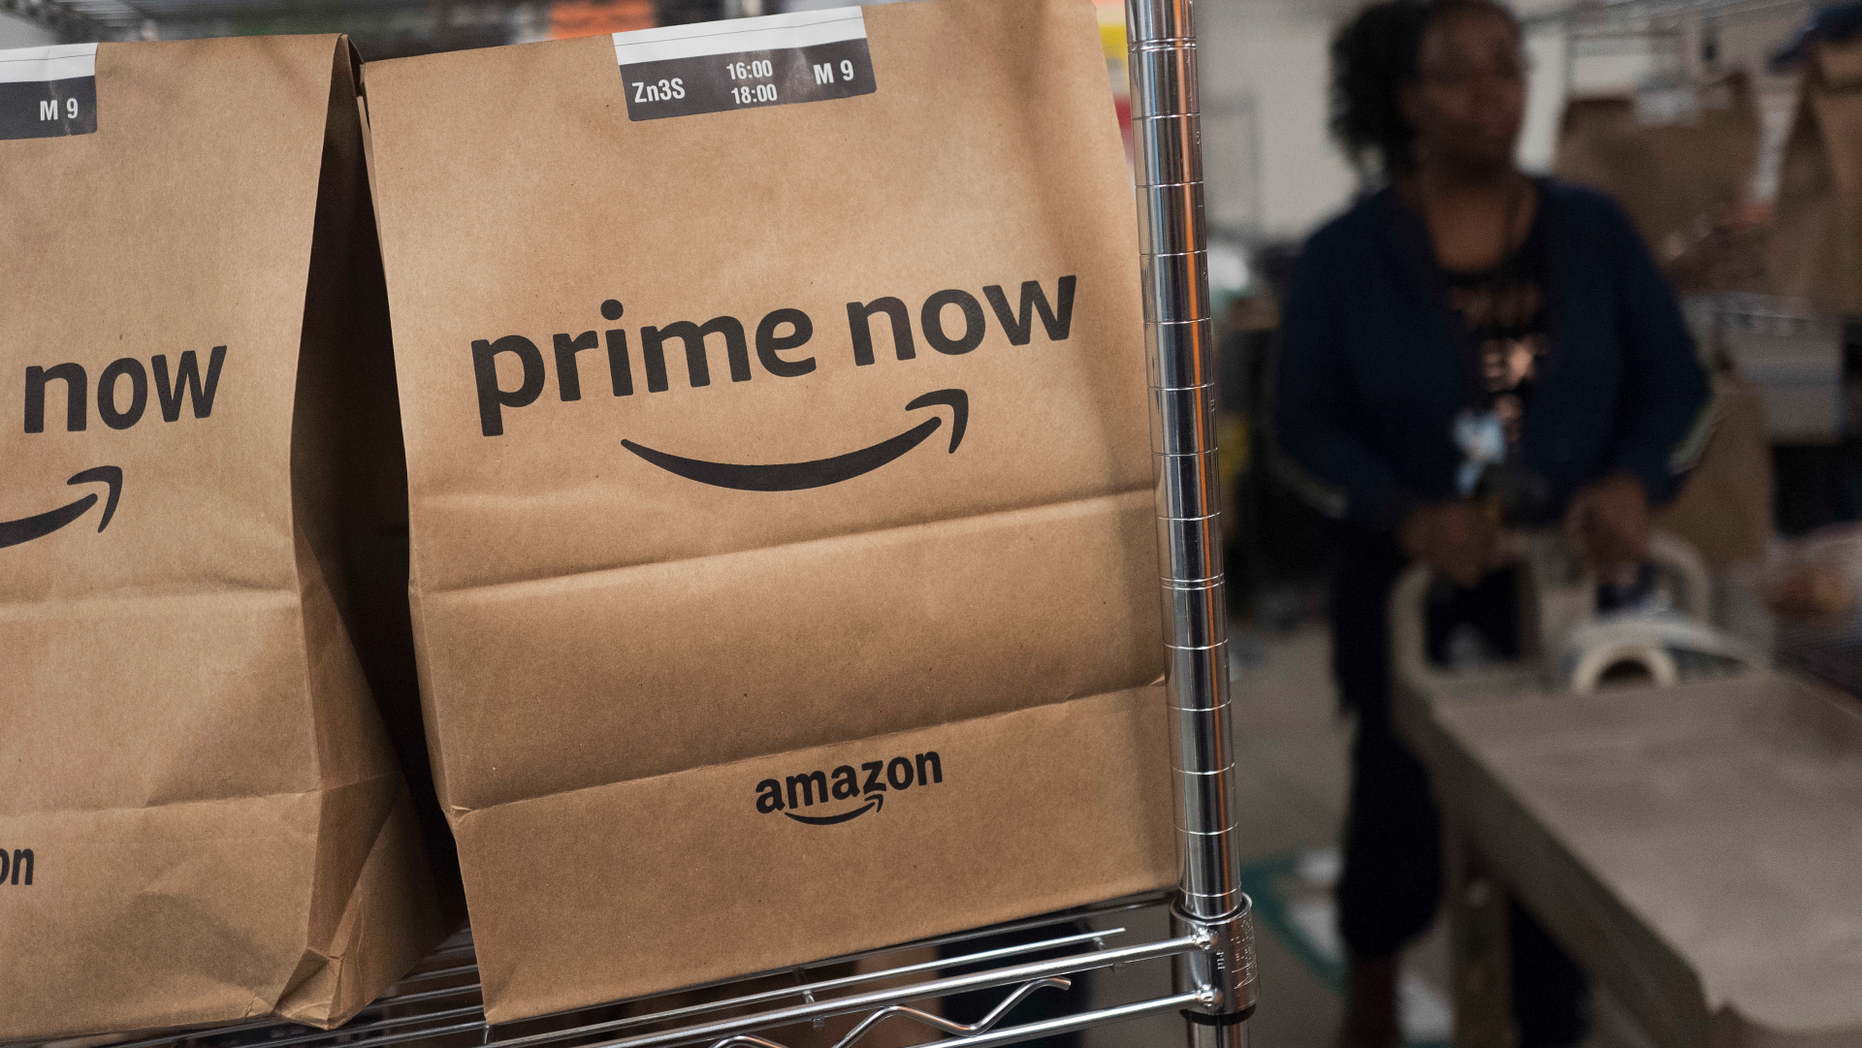 FILE- In this Dec. 20, 2017, file photo, Prime Now customer orders are ready for delivery at the Amazon warehouse in New York. Same-day delivery promises the convenience of online ordering with nearly the same immediacy of store buying. (AP Photo/Mark Lennihan, File)